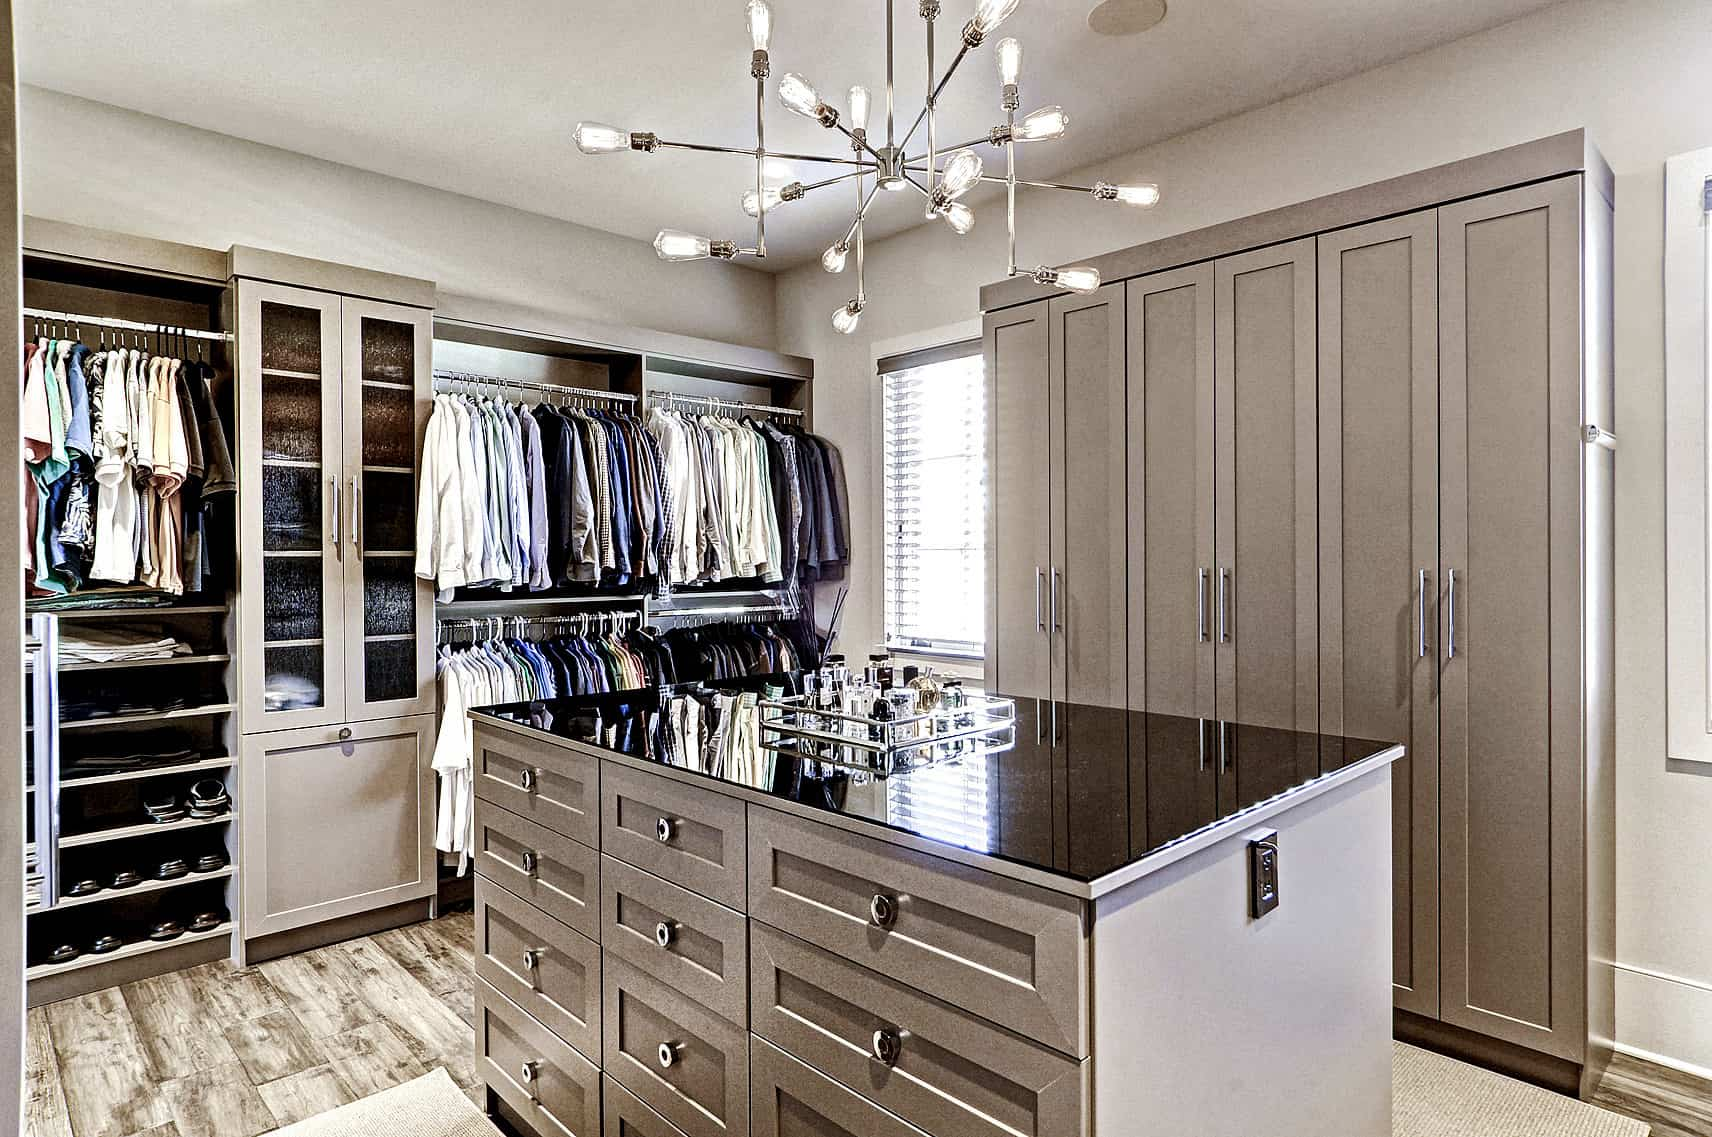 Drenched In Milk Coffee Color This Walk Closet Is B With Elegance